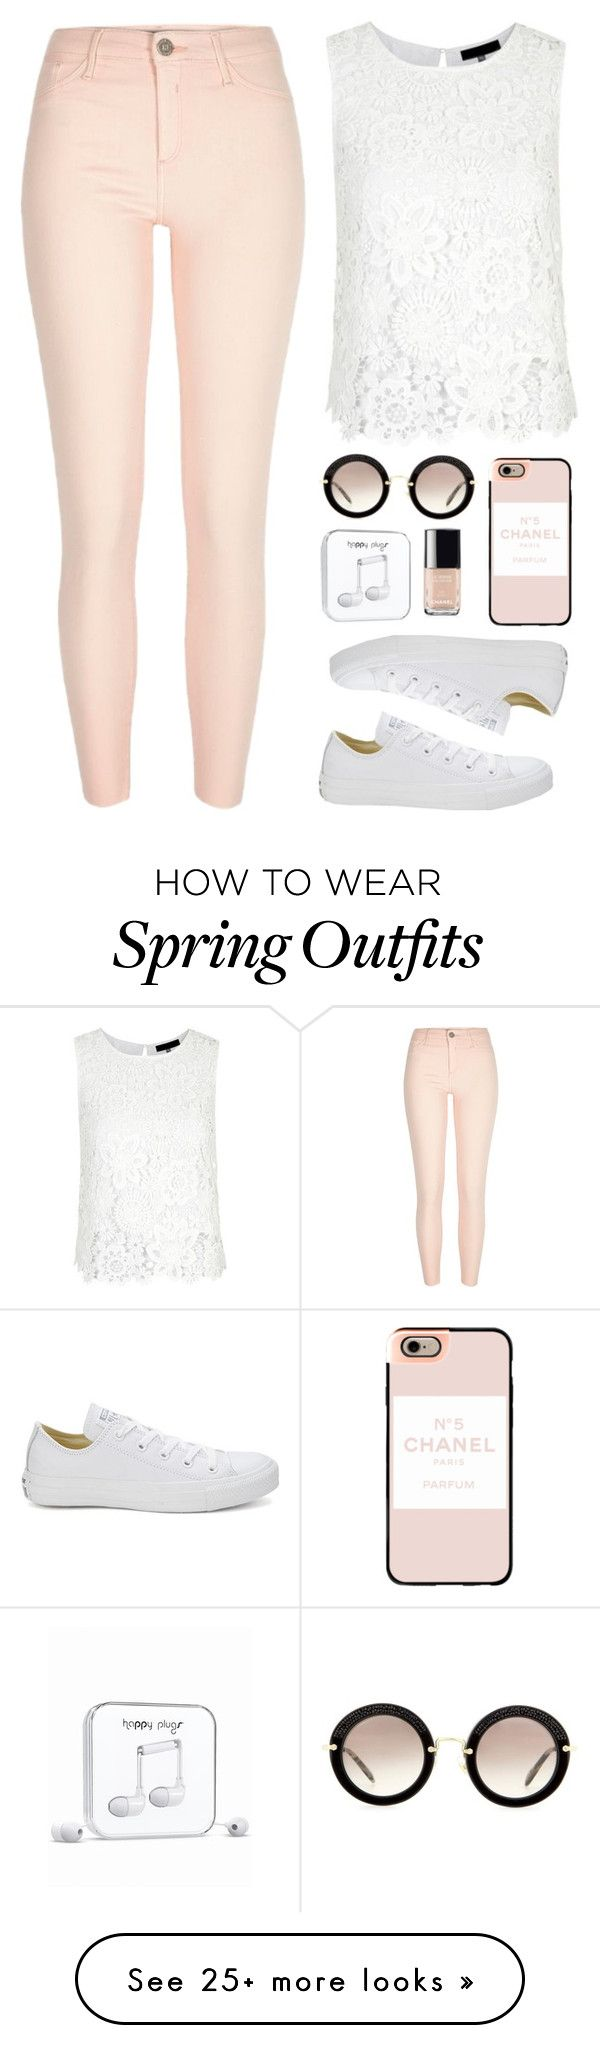 """""""Spring Outfit"""" by aurorabc on Polyvore featuring River Island, Converse, Happy Plugs, Chanel, Miu Miu, Casetify, women's clothing, women, female and woman"""